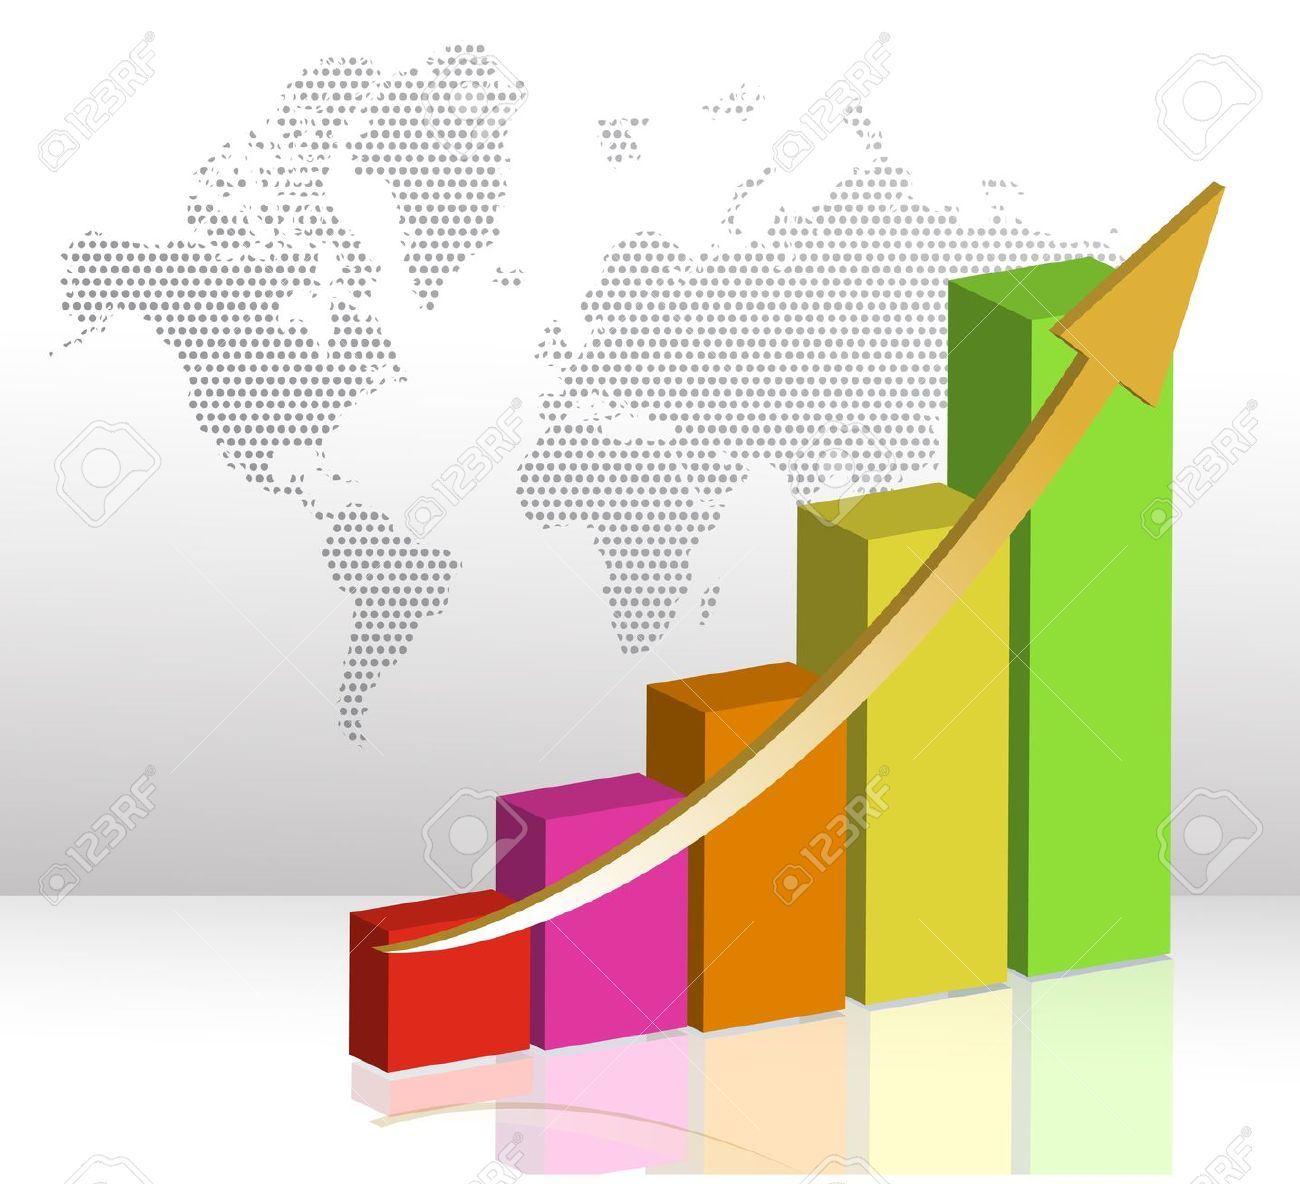 Colorful Business Bar Chart Illustration On A White Background.